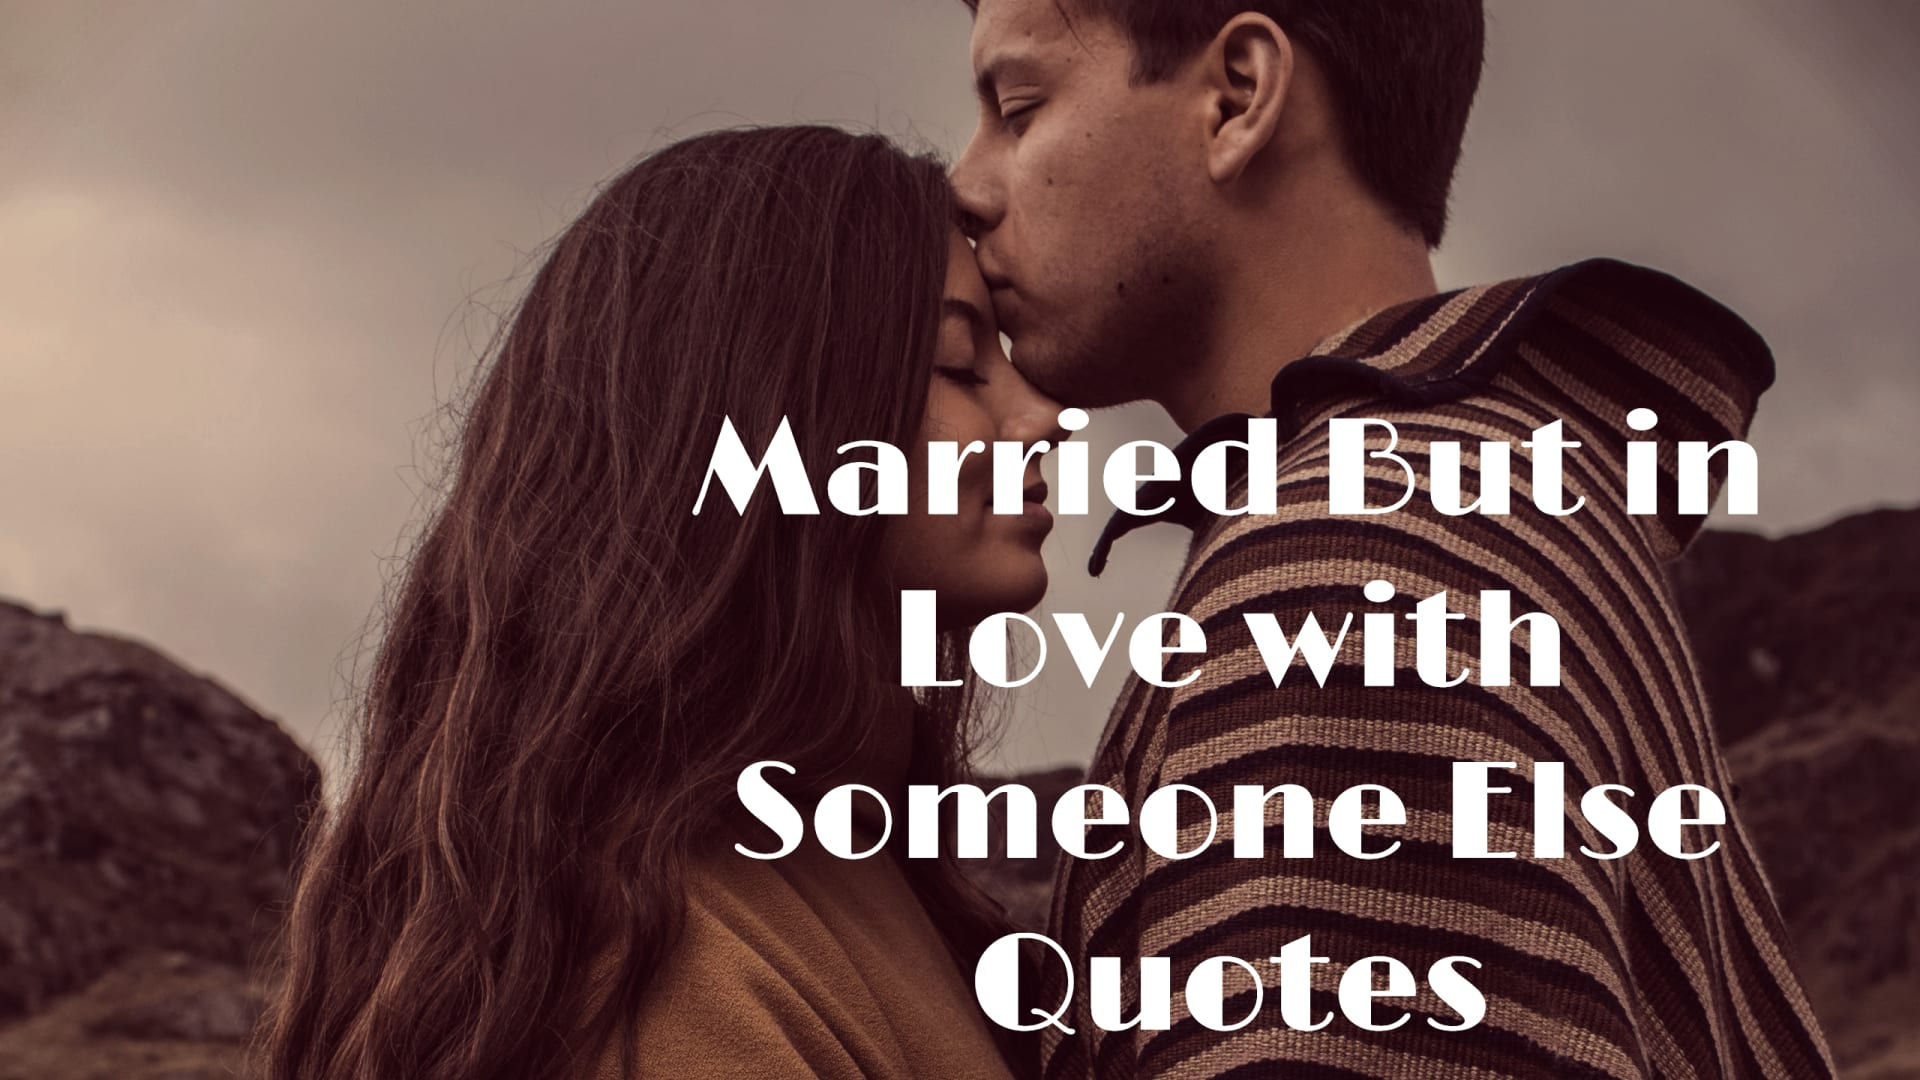 Married But in Love with Someone Else Quotes